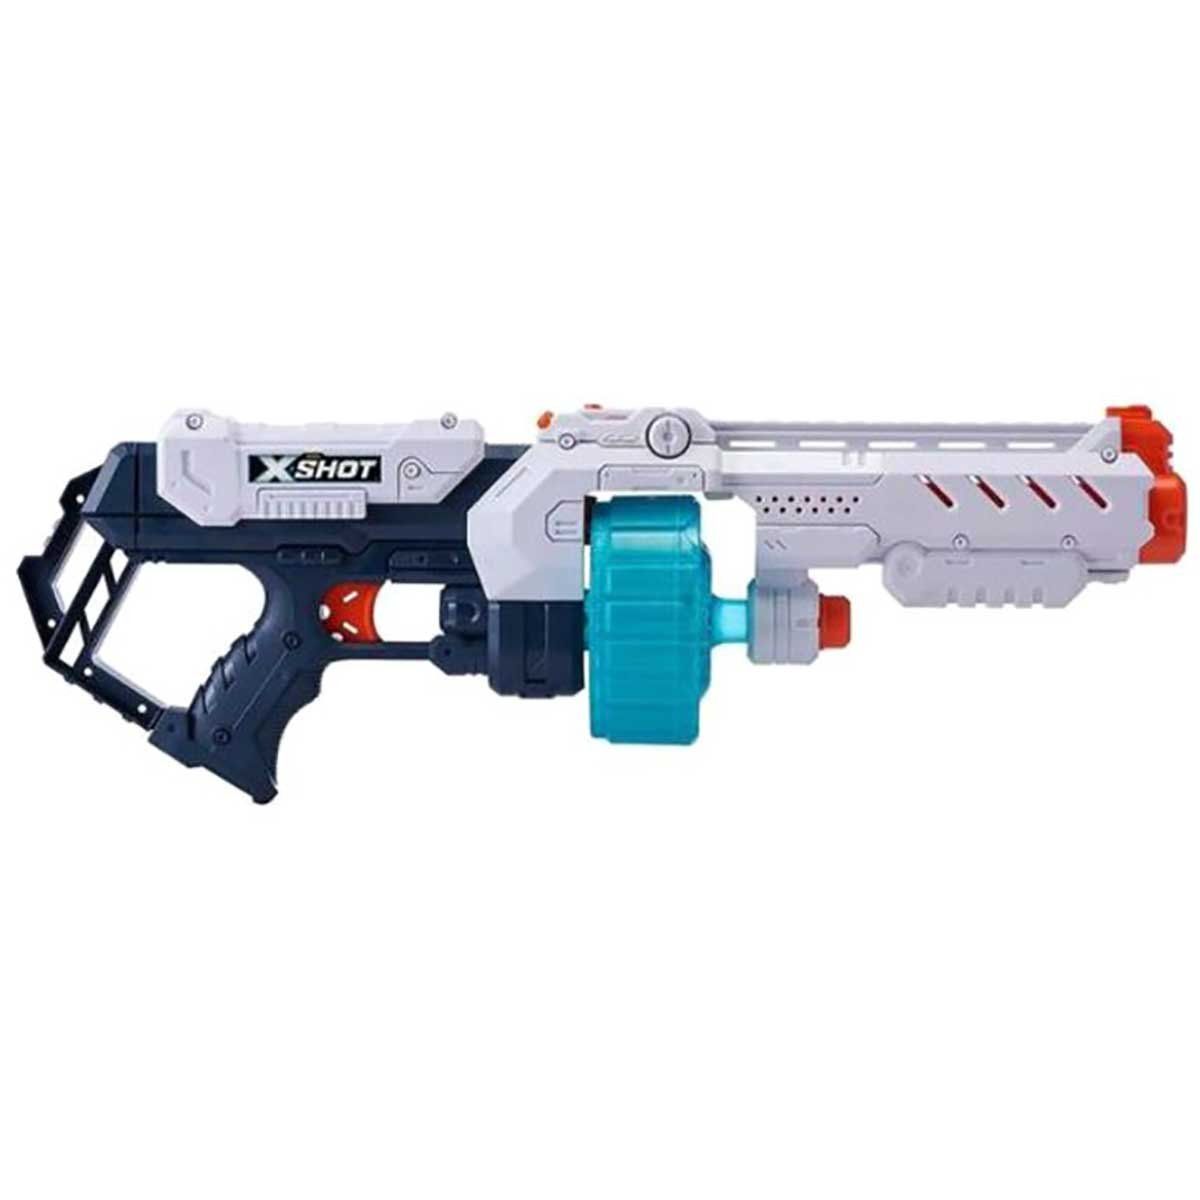 Blaster X-Shot Excel Turbo Fire, 48 proiectile